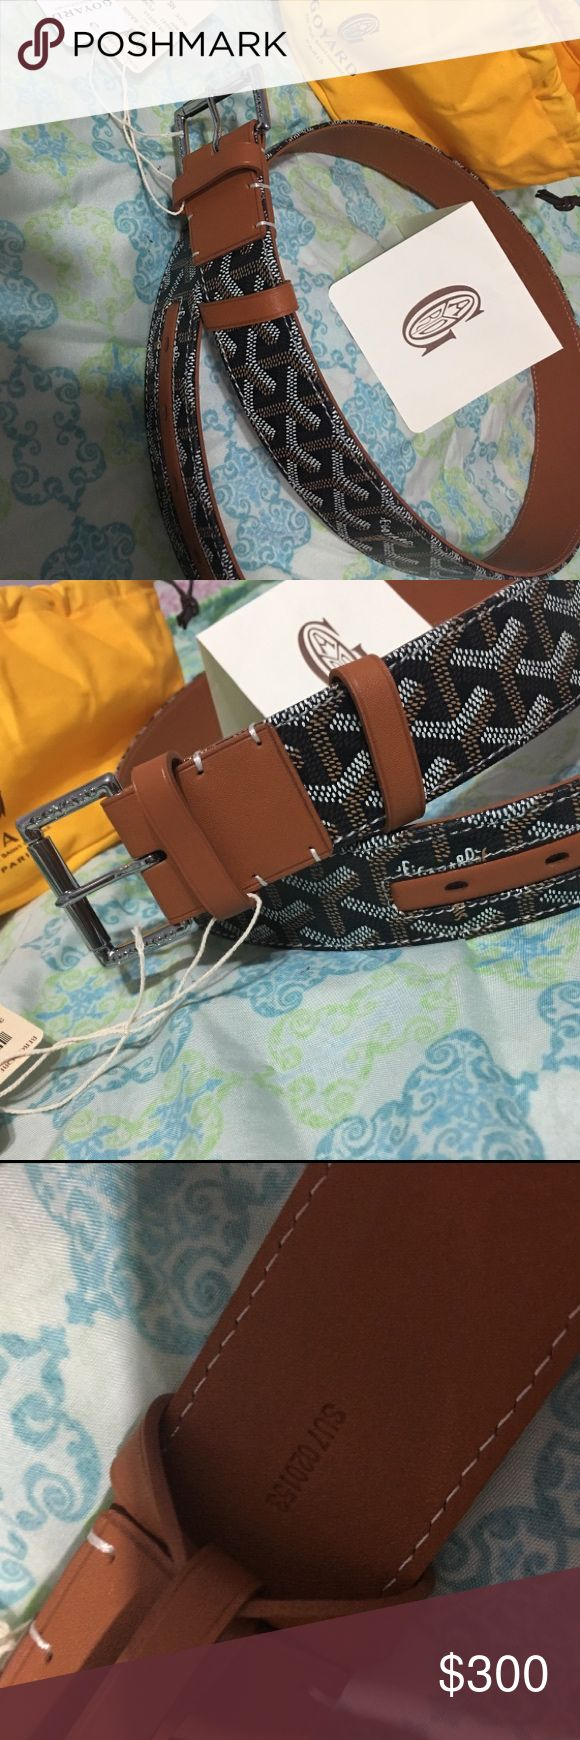 Goyard belt 100% authentic brand new goyard belt. Comes with dust bag and tags. Comment below for size or message me for more information at 3476088710 Goyard Accessories Belts